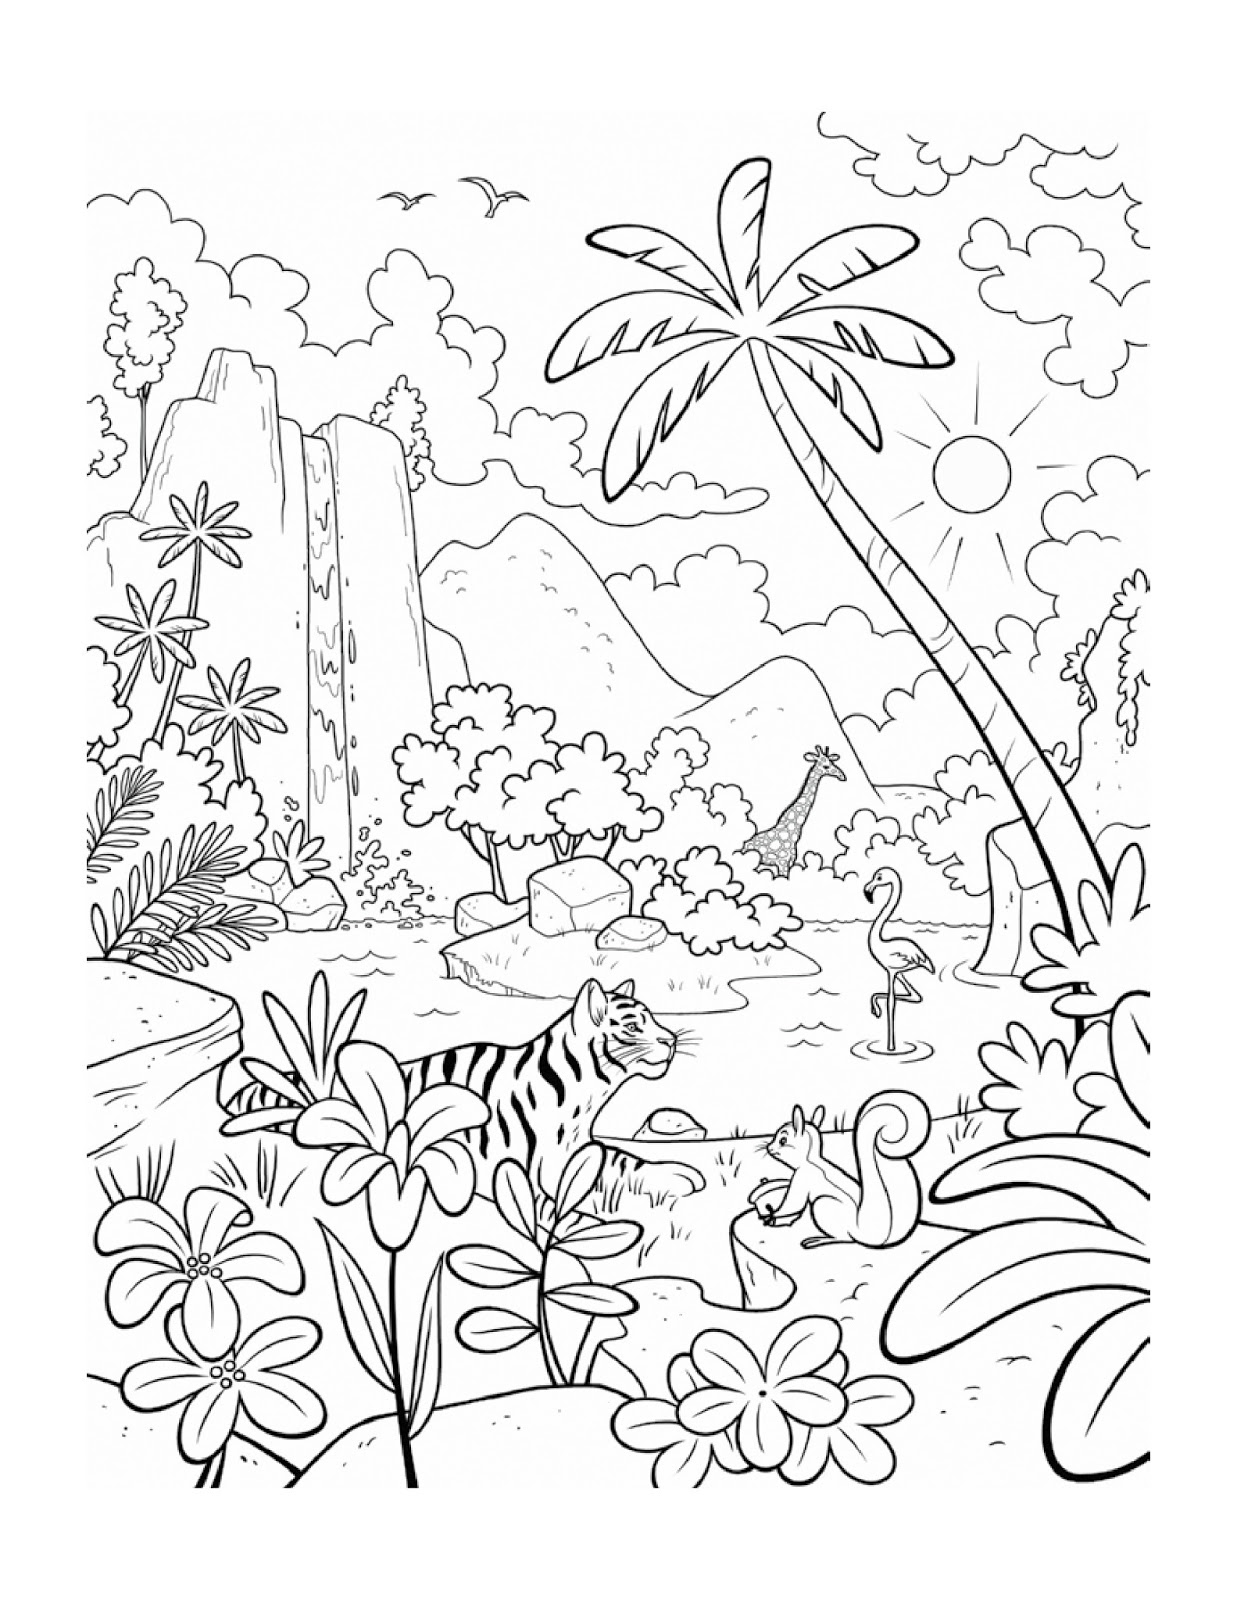 1237x1600 Jungle Leaf Coloring Page To Print For Toddler Free Printable